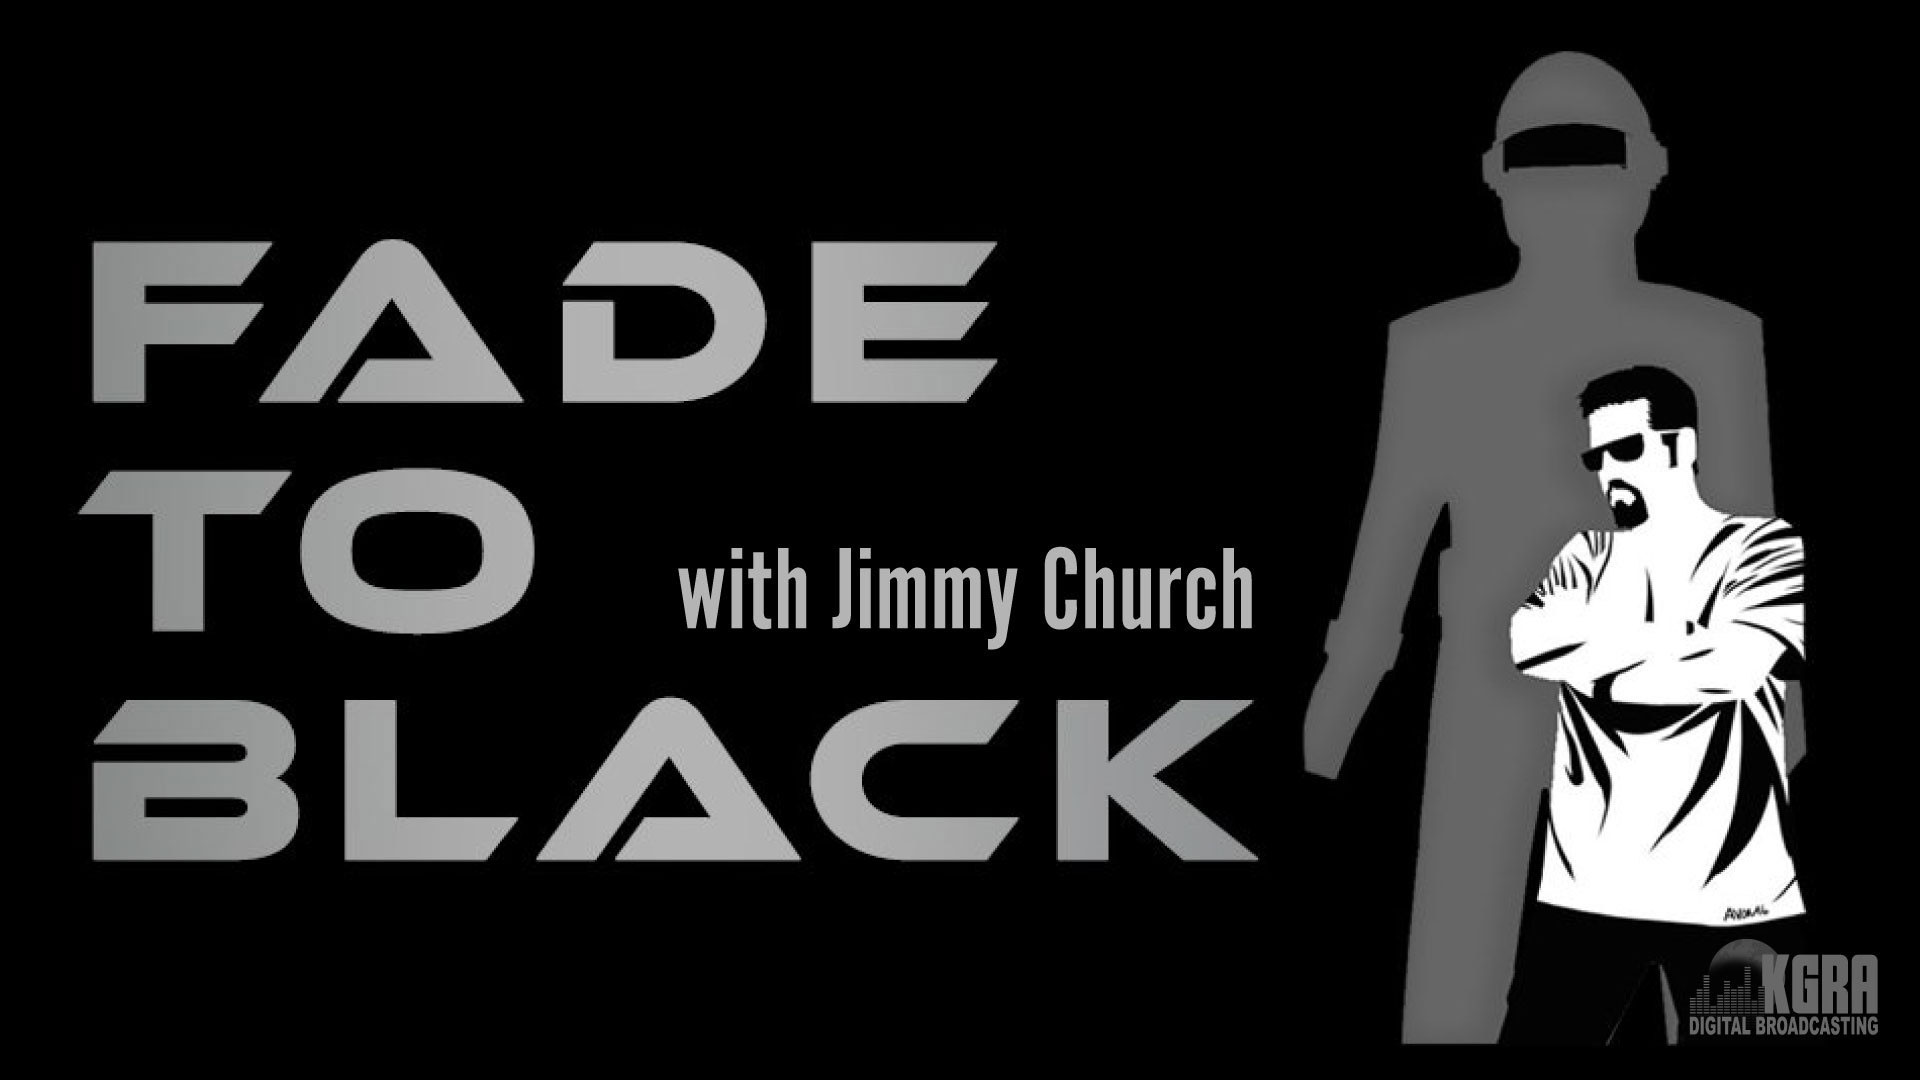 Fade to Black - Jimmy Church